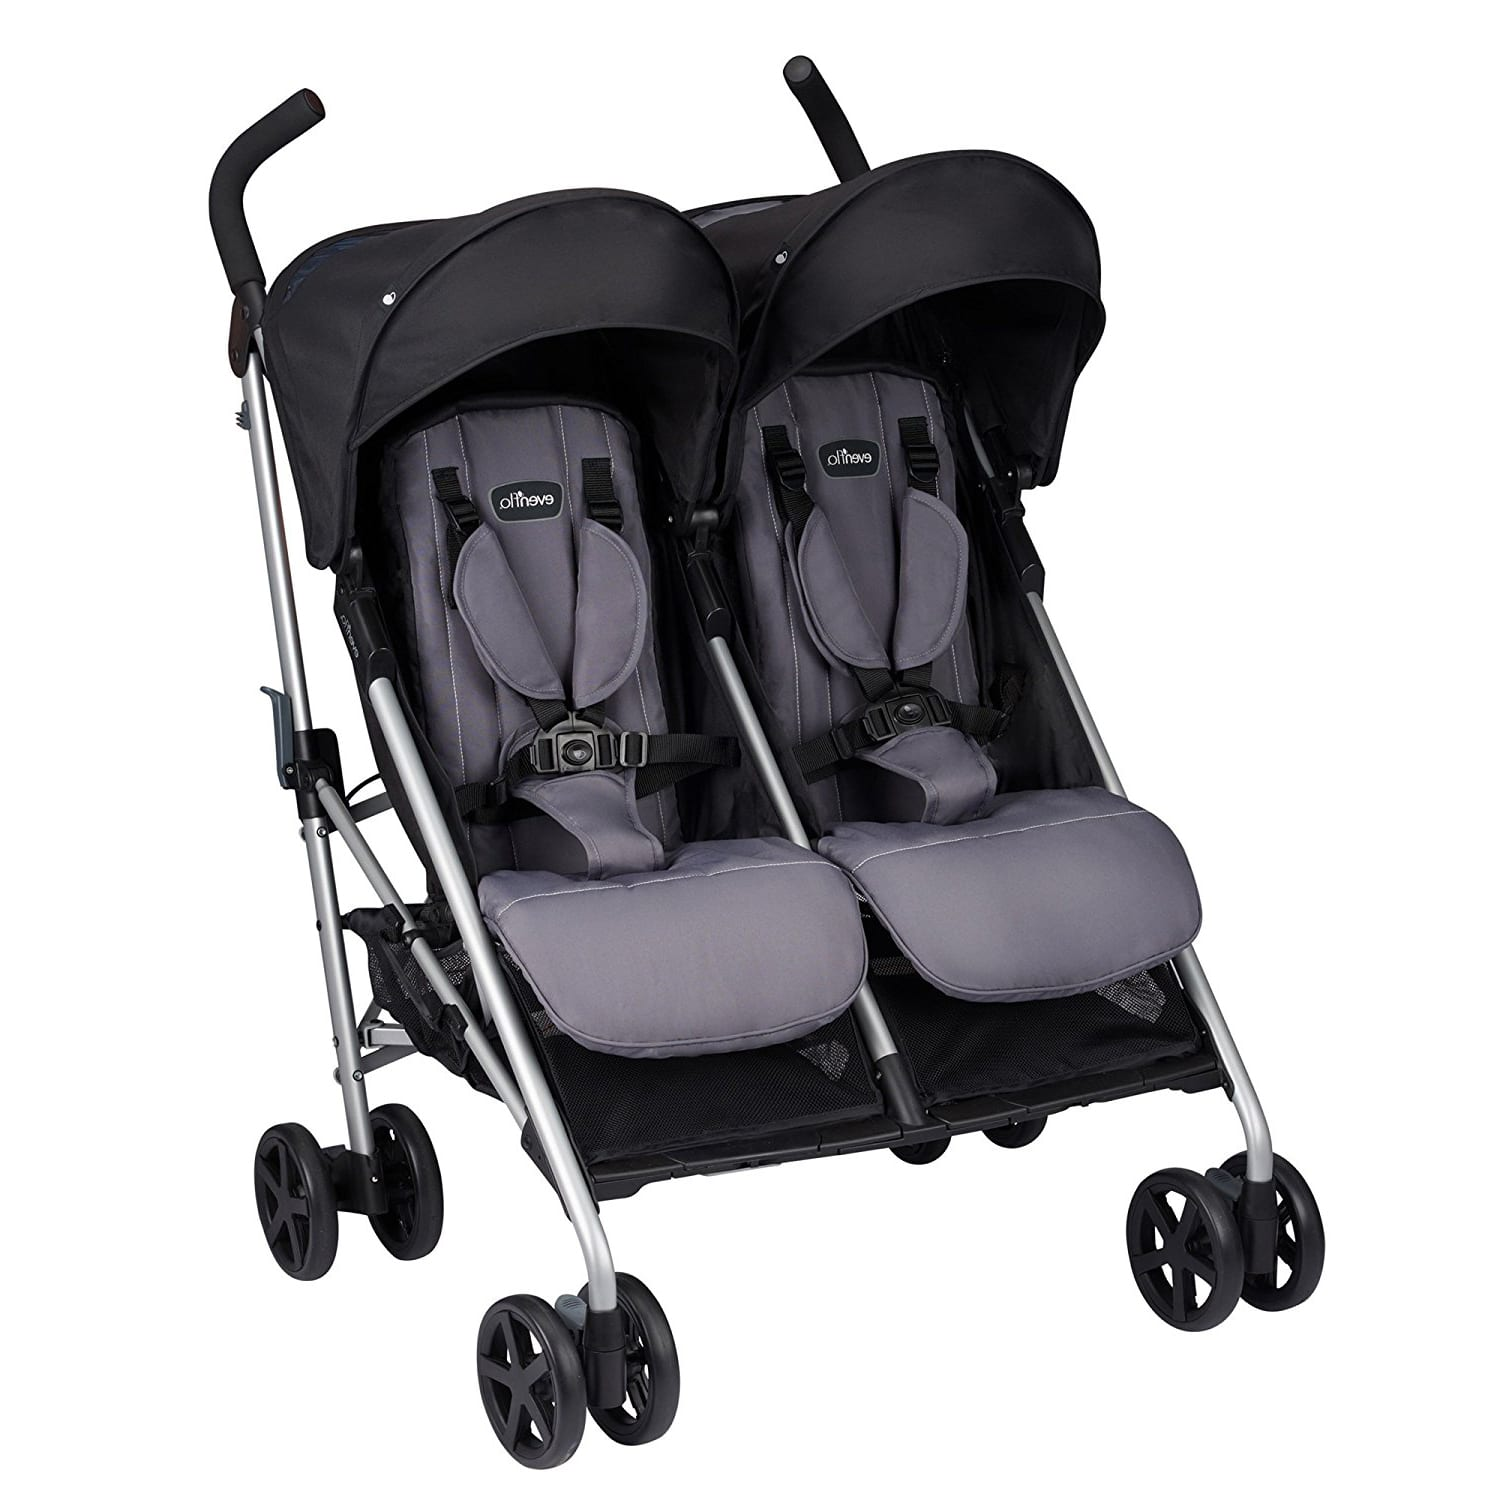 Evenflo Minno Twin Double Stroller Grey